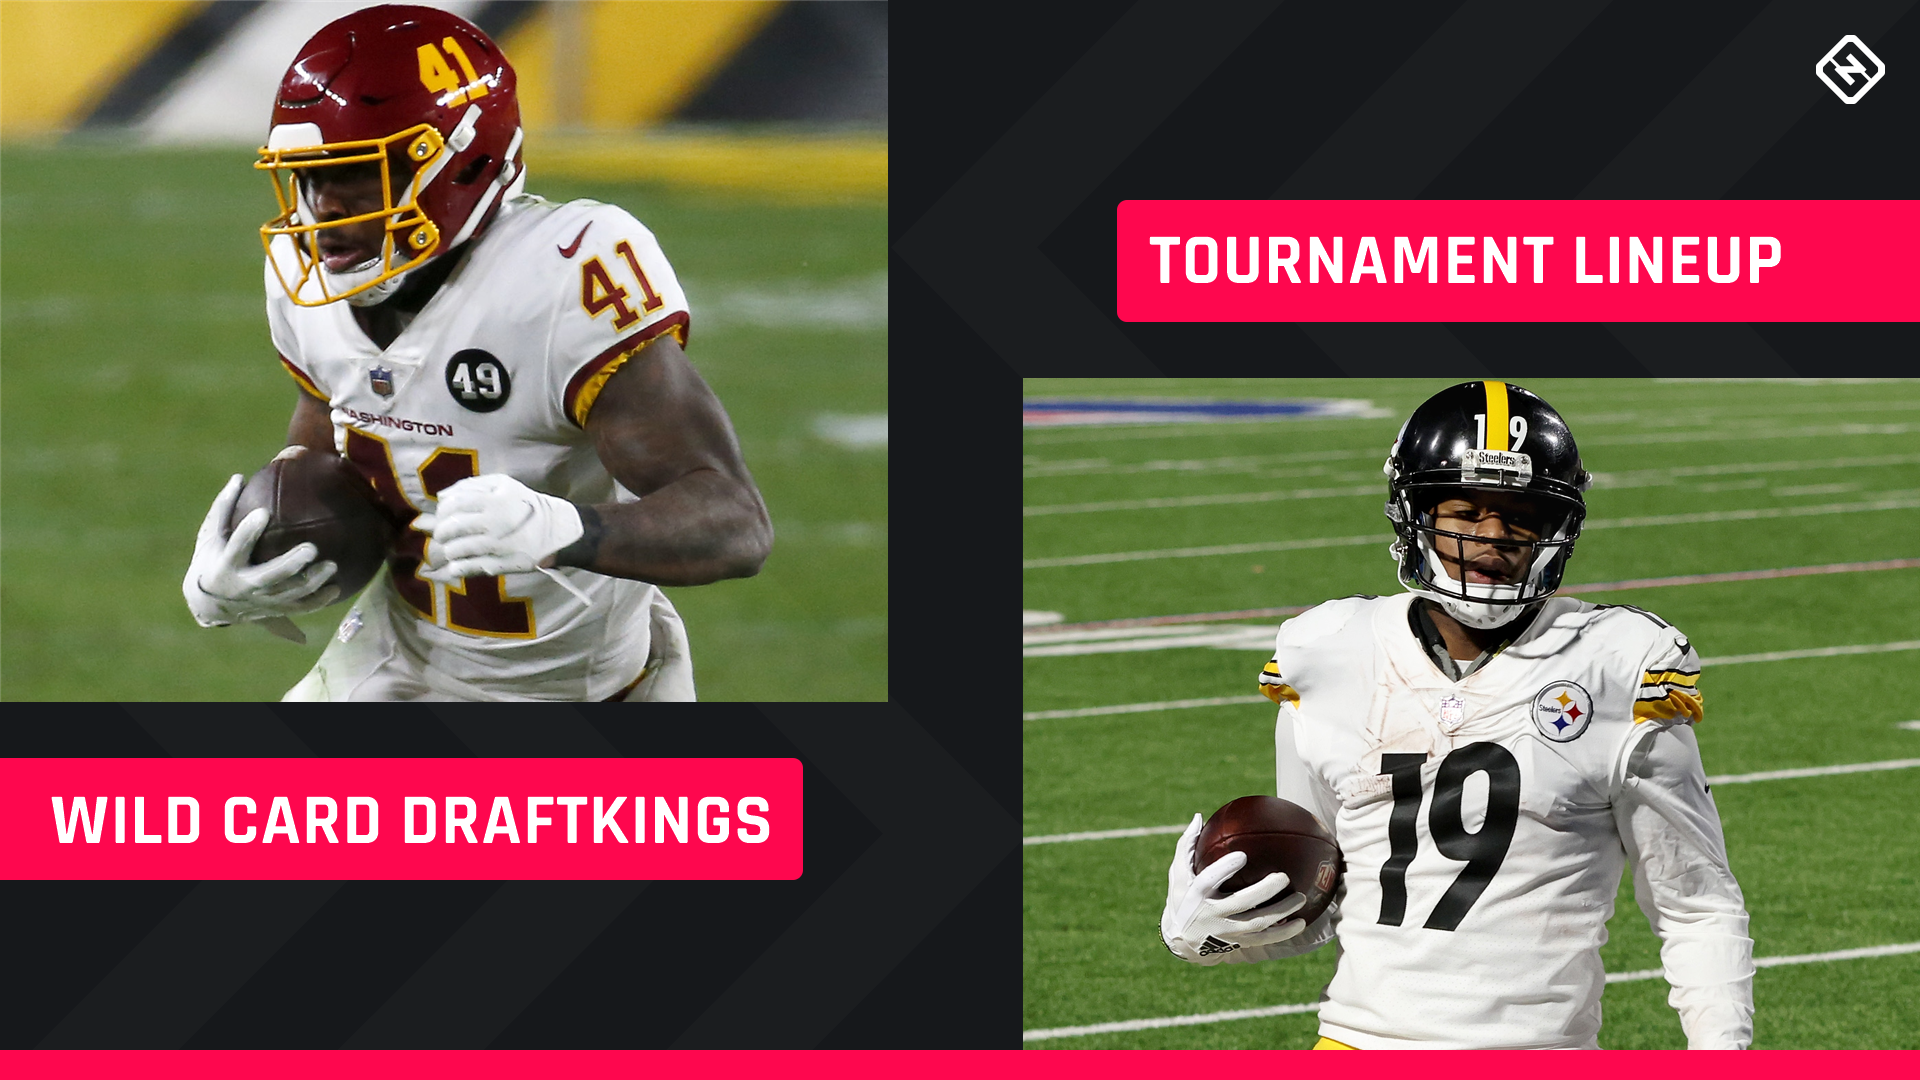 Wild Card DraftKings Picks: NFL DFS lineup advice for daily fantasy football tournaments